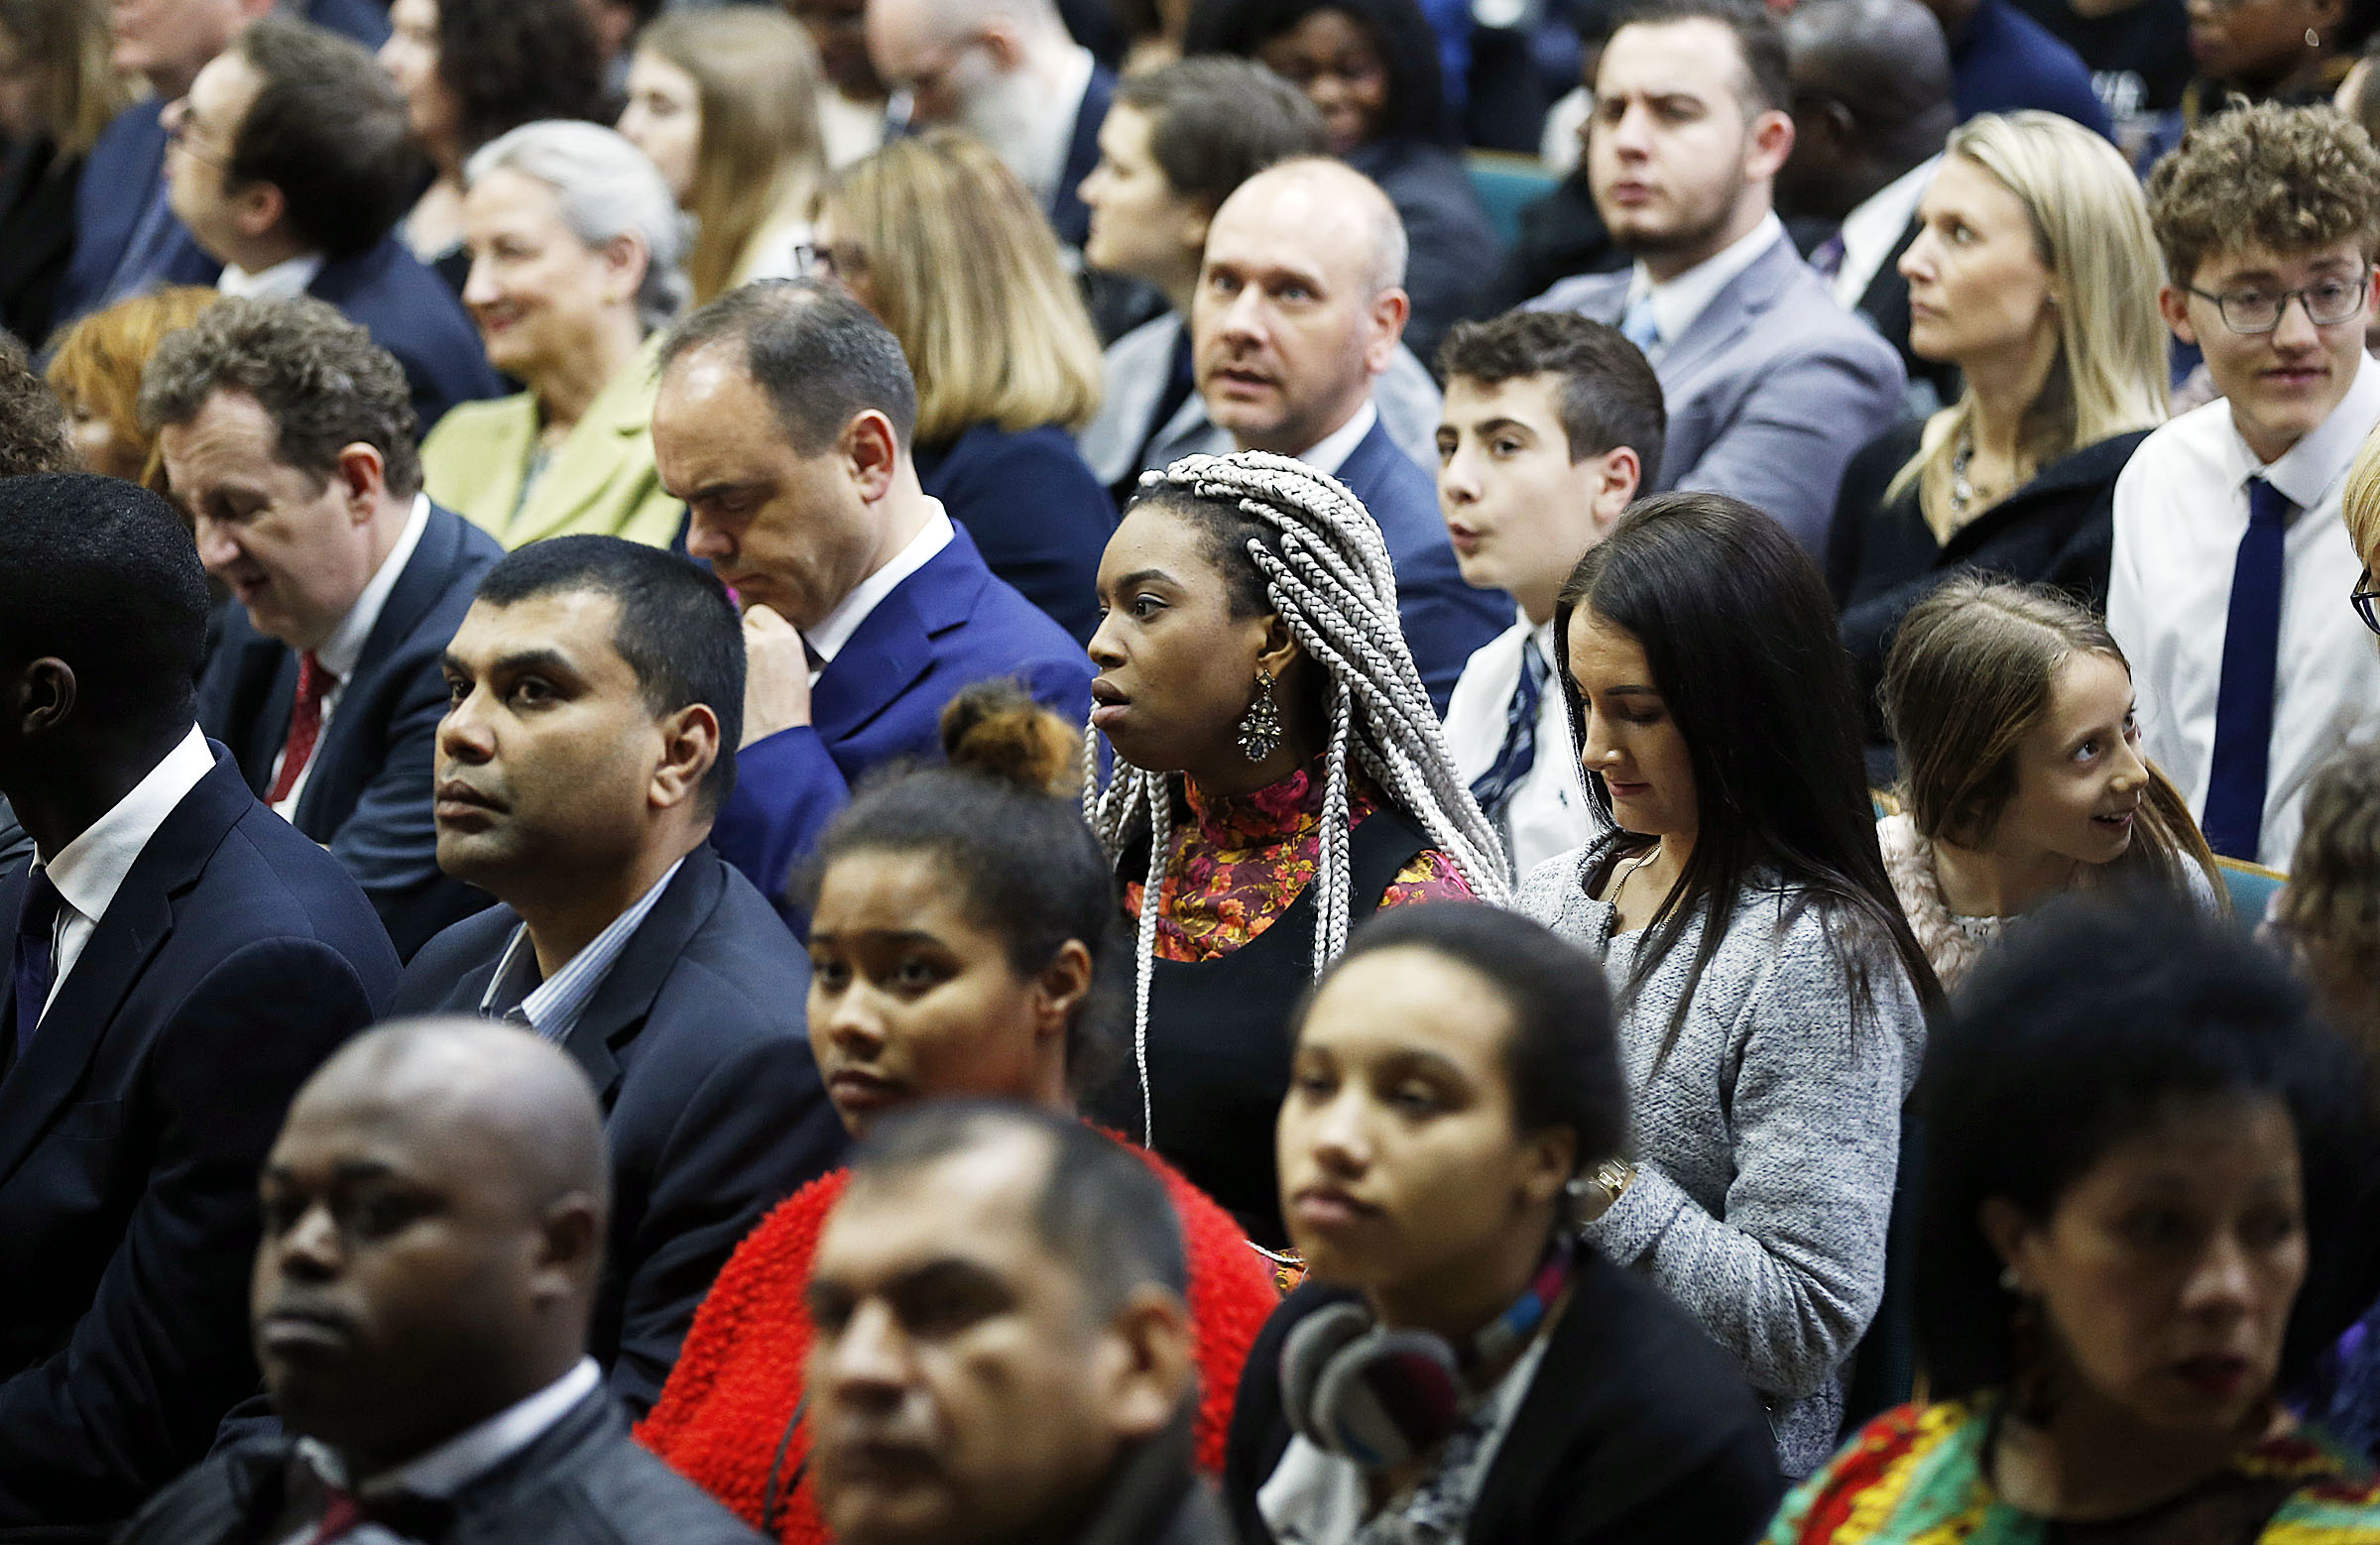 Those in attendance wait for the start of a meeting with President Russell M. Nelson at the Hyde Park Chapel in London on Thursday, April 12, 2018.